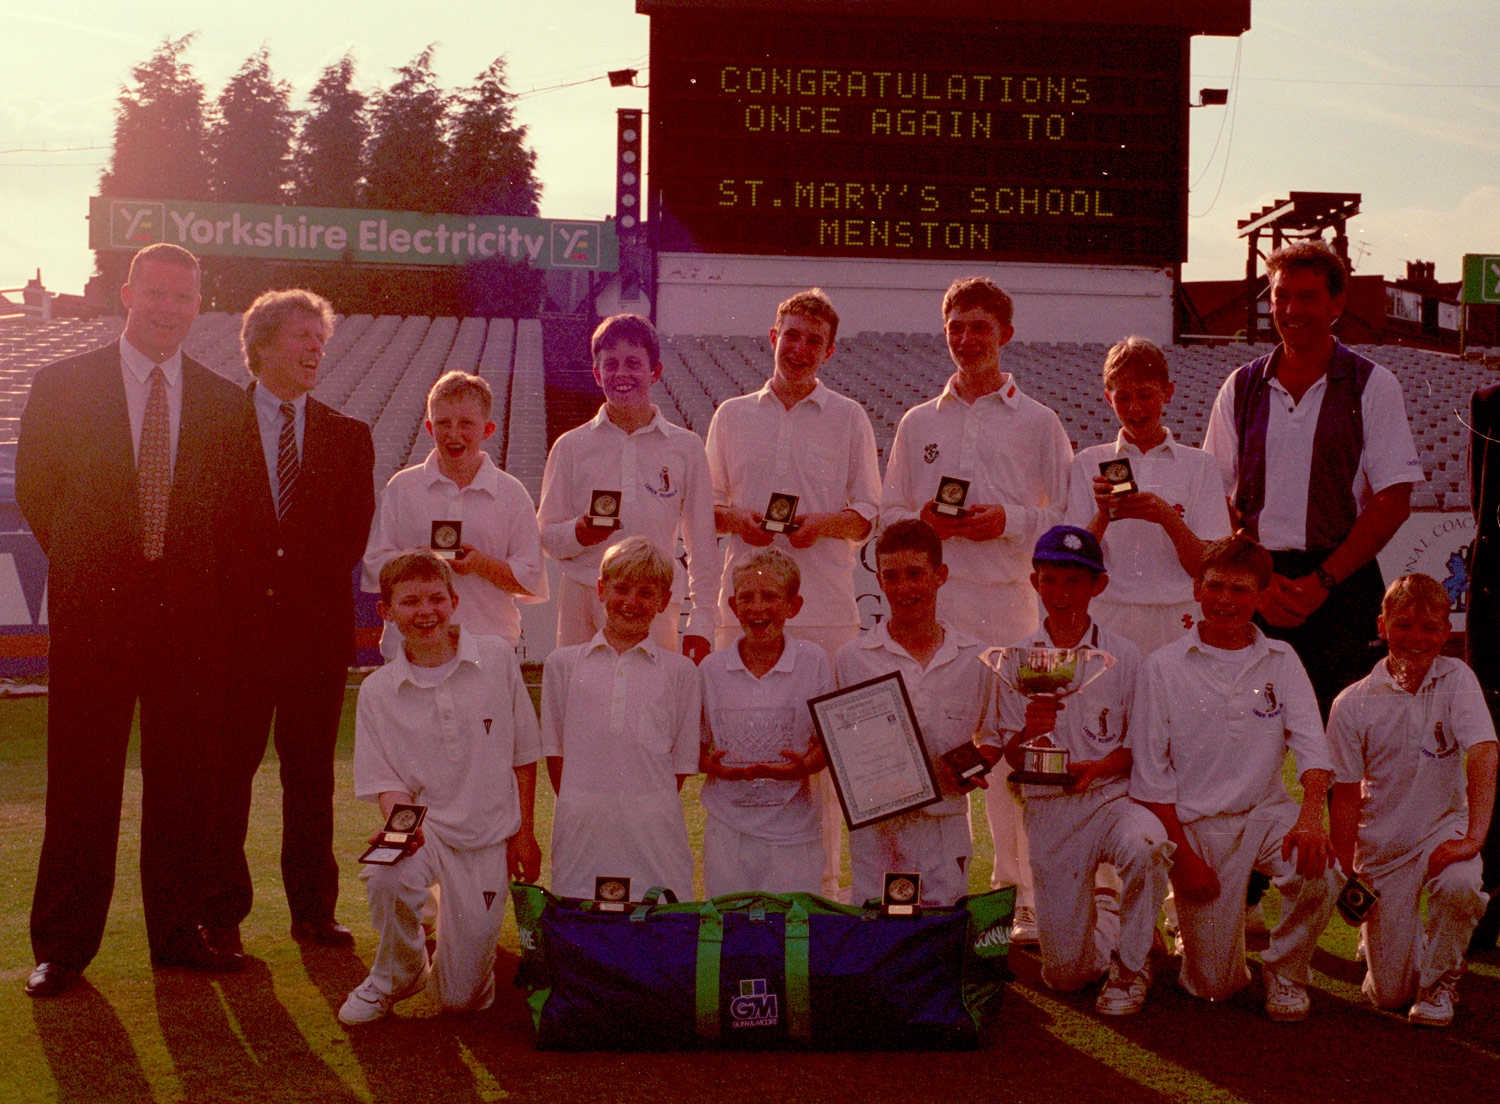 THE 1990s: St. Mary's Menston Yorkshire Cricket Champions again.